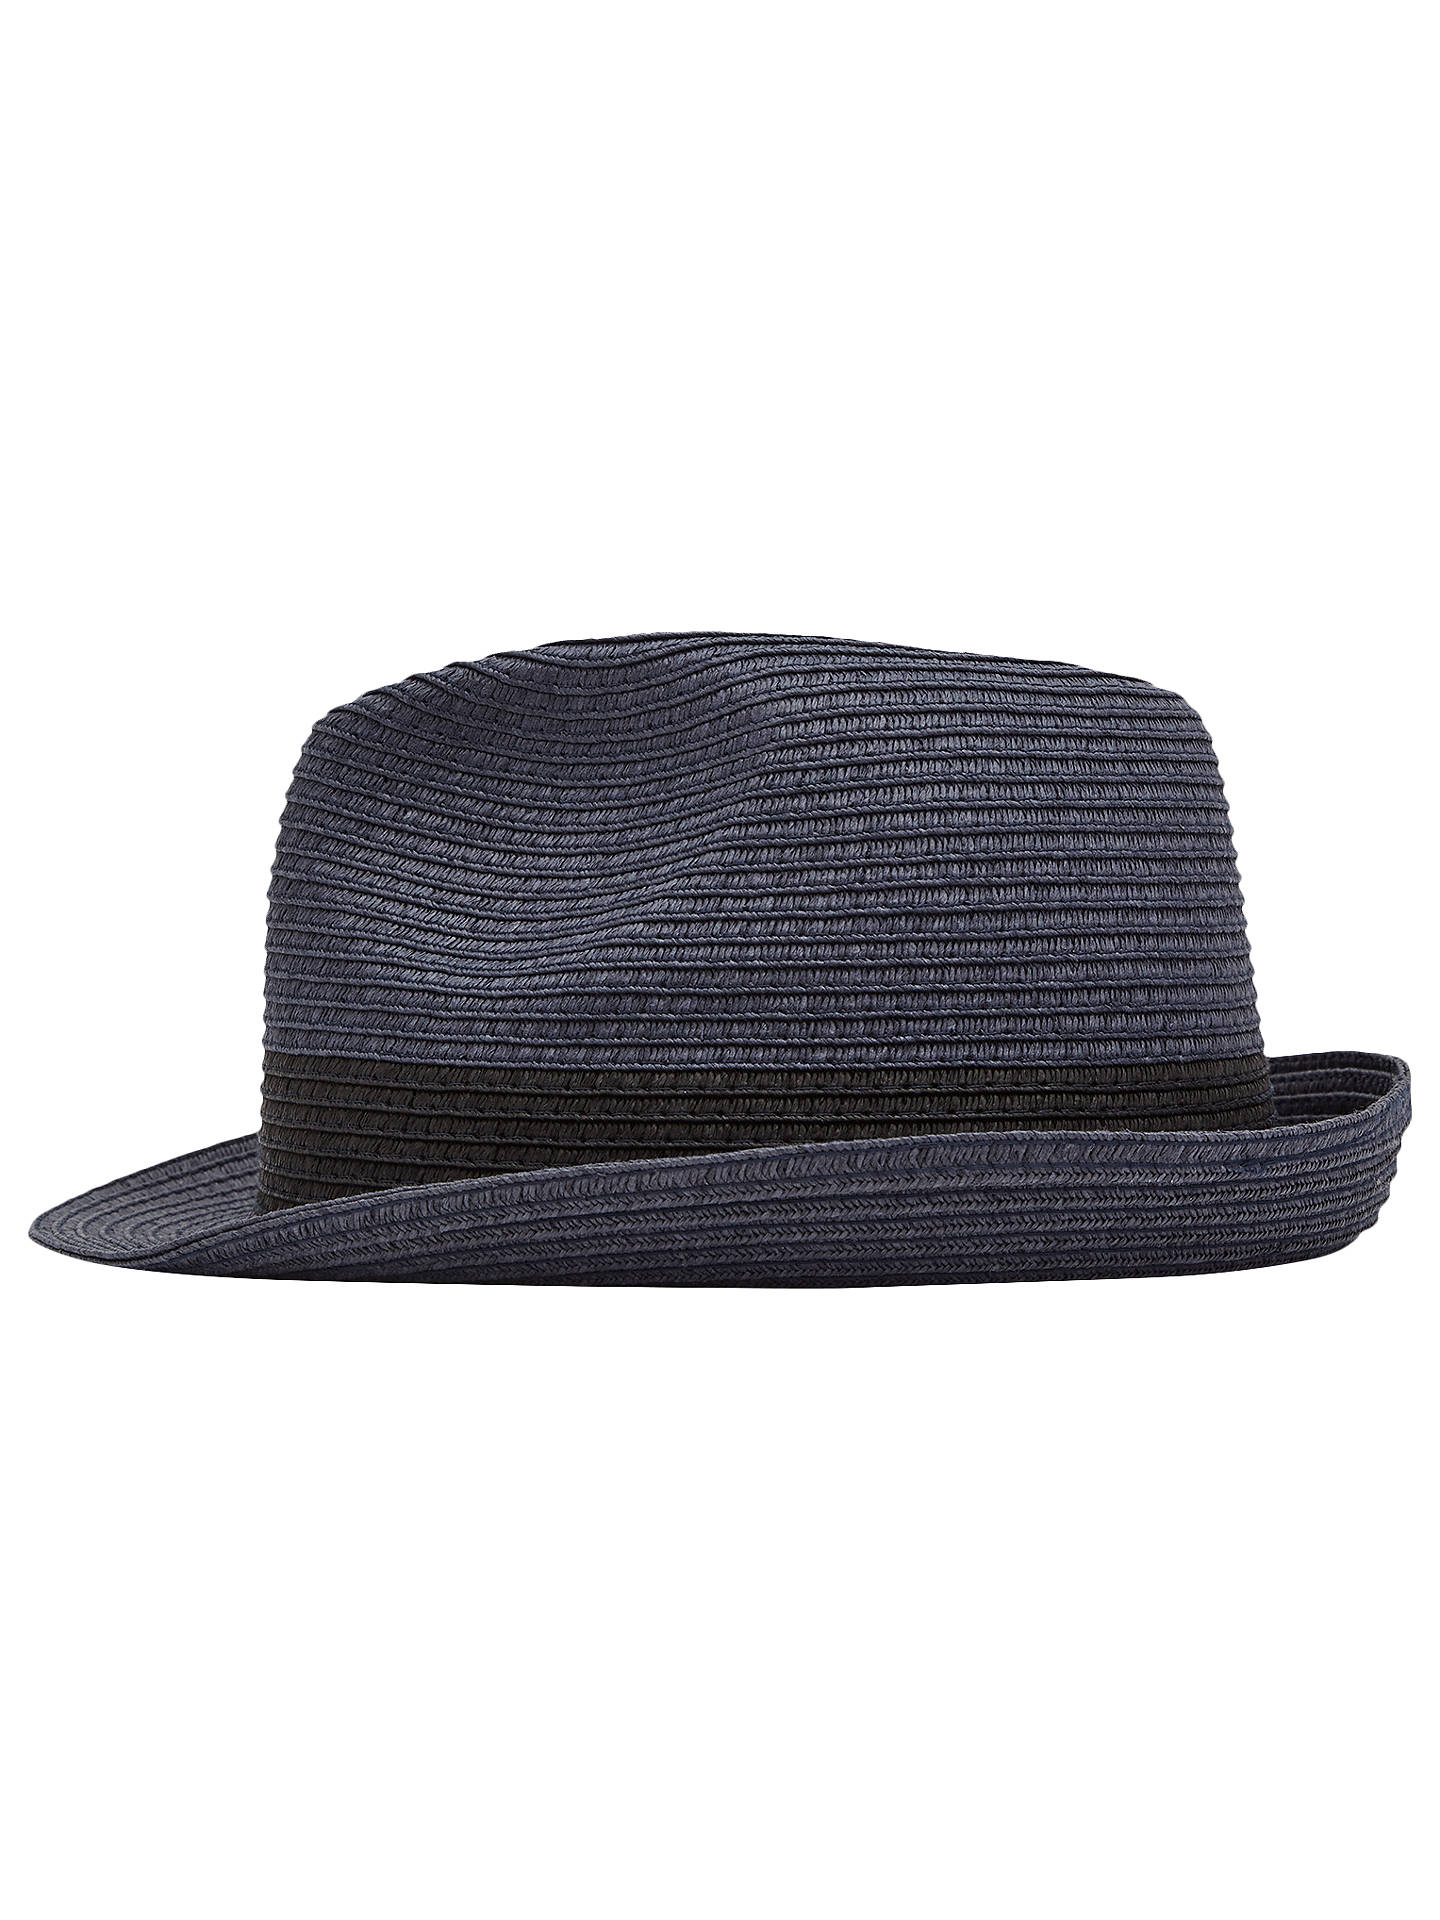 57f2dfea Buy Reiss Thomas Woven Trilby Hat, Navy, S/M Online at johnlewis.